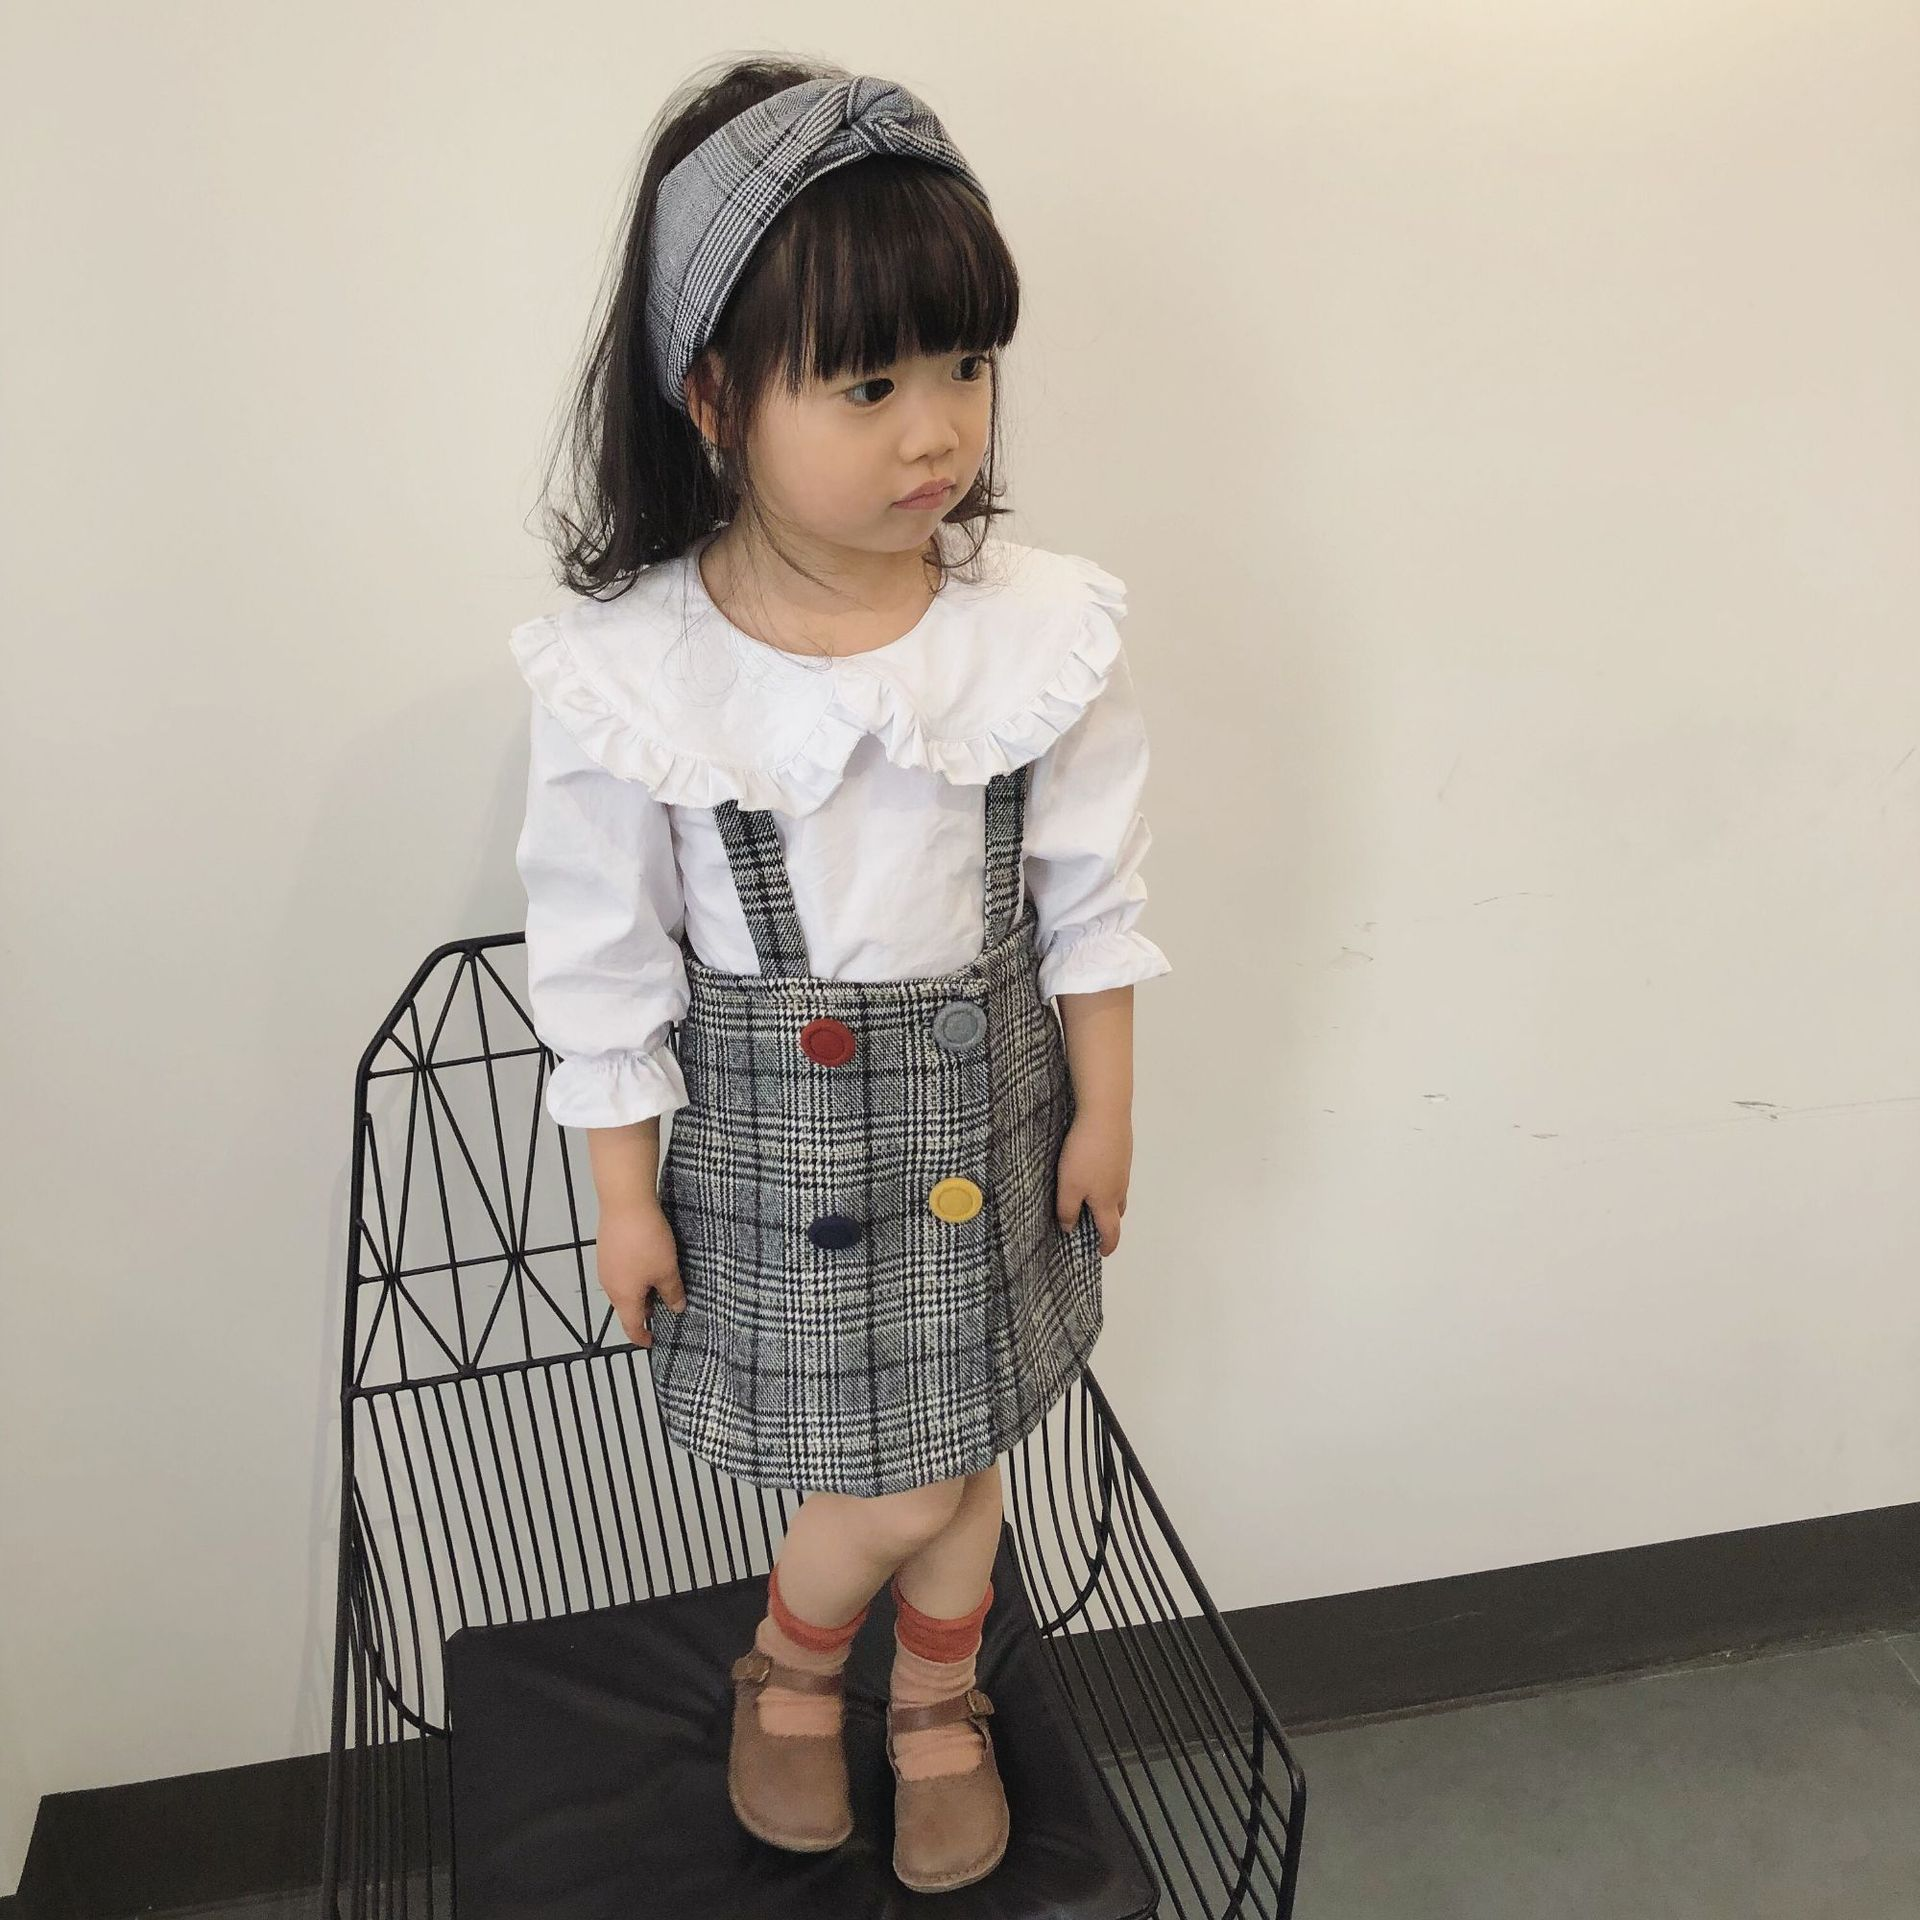 30dad3dfdc Spring autumn Korean style plaid suspender skirts for baby girls colorful  button fashion pinafore skirt children kids clothes